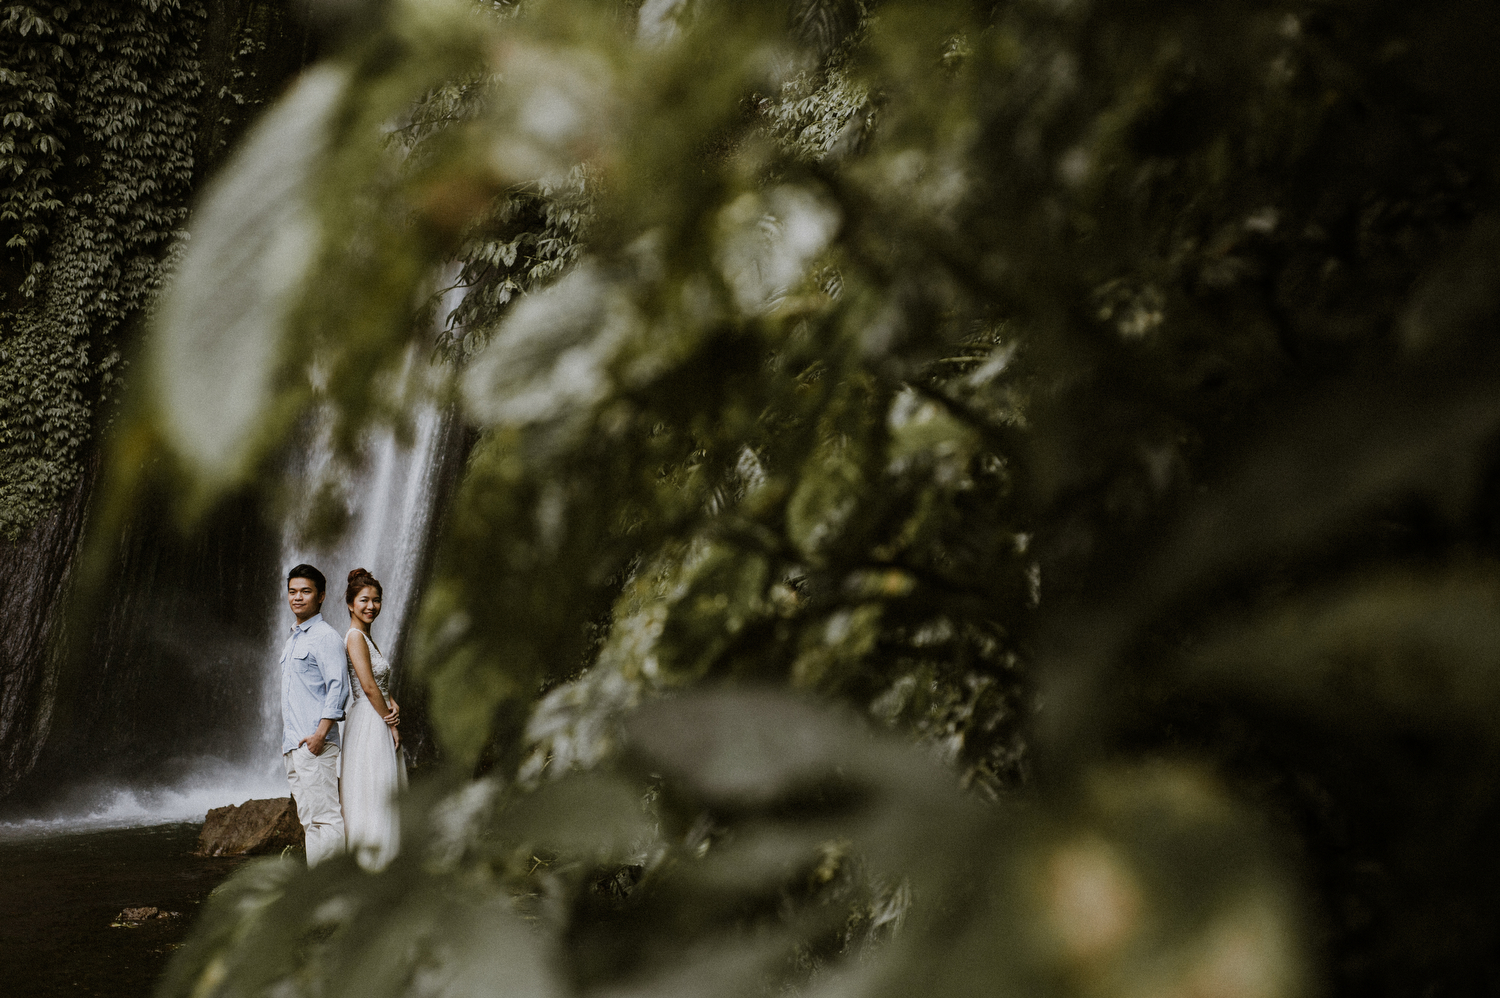 preweddinginbali-bali-batur-ubud-diktatphotography-engagemnet-baliweddingphotographer-weddinginbali-37